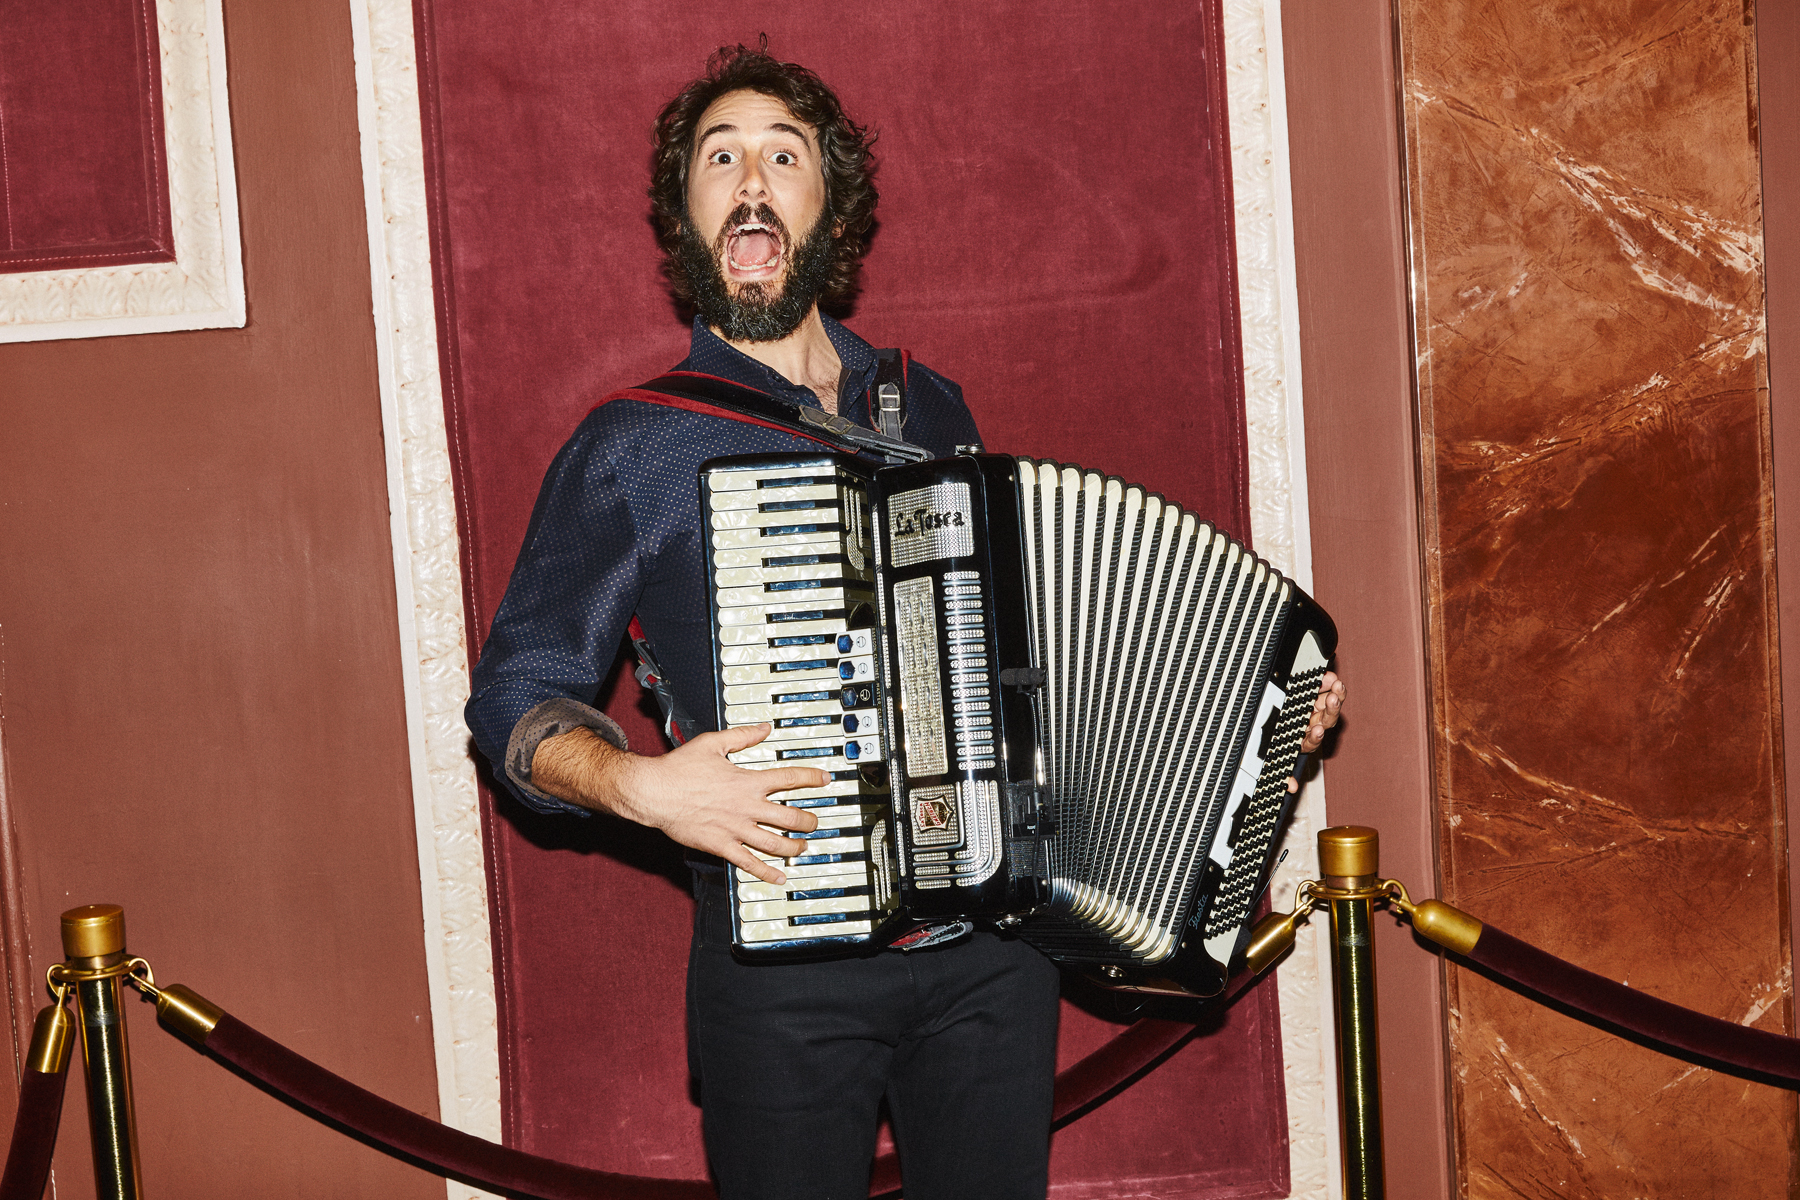 Josh Groban for the New York Times